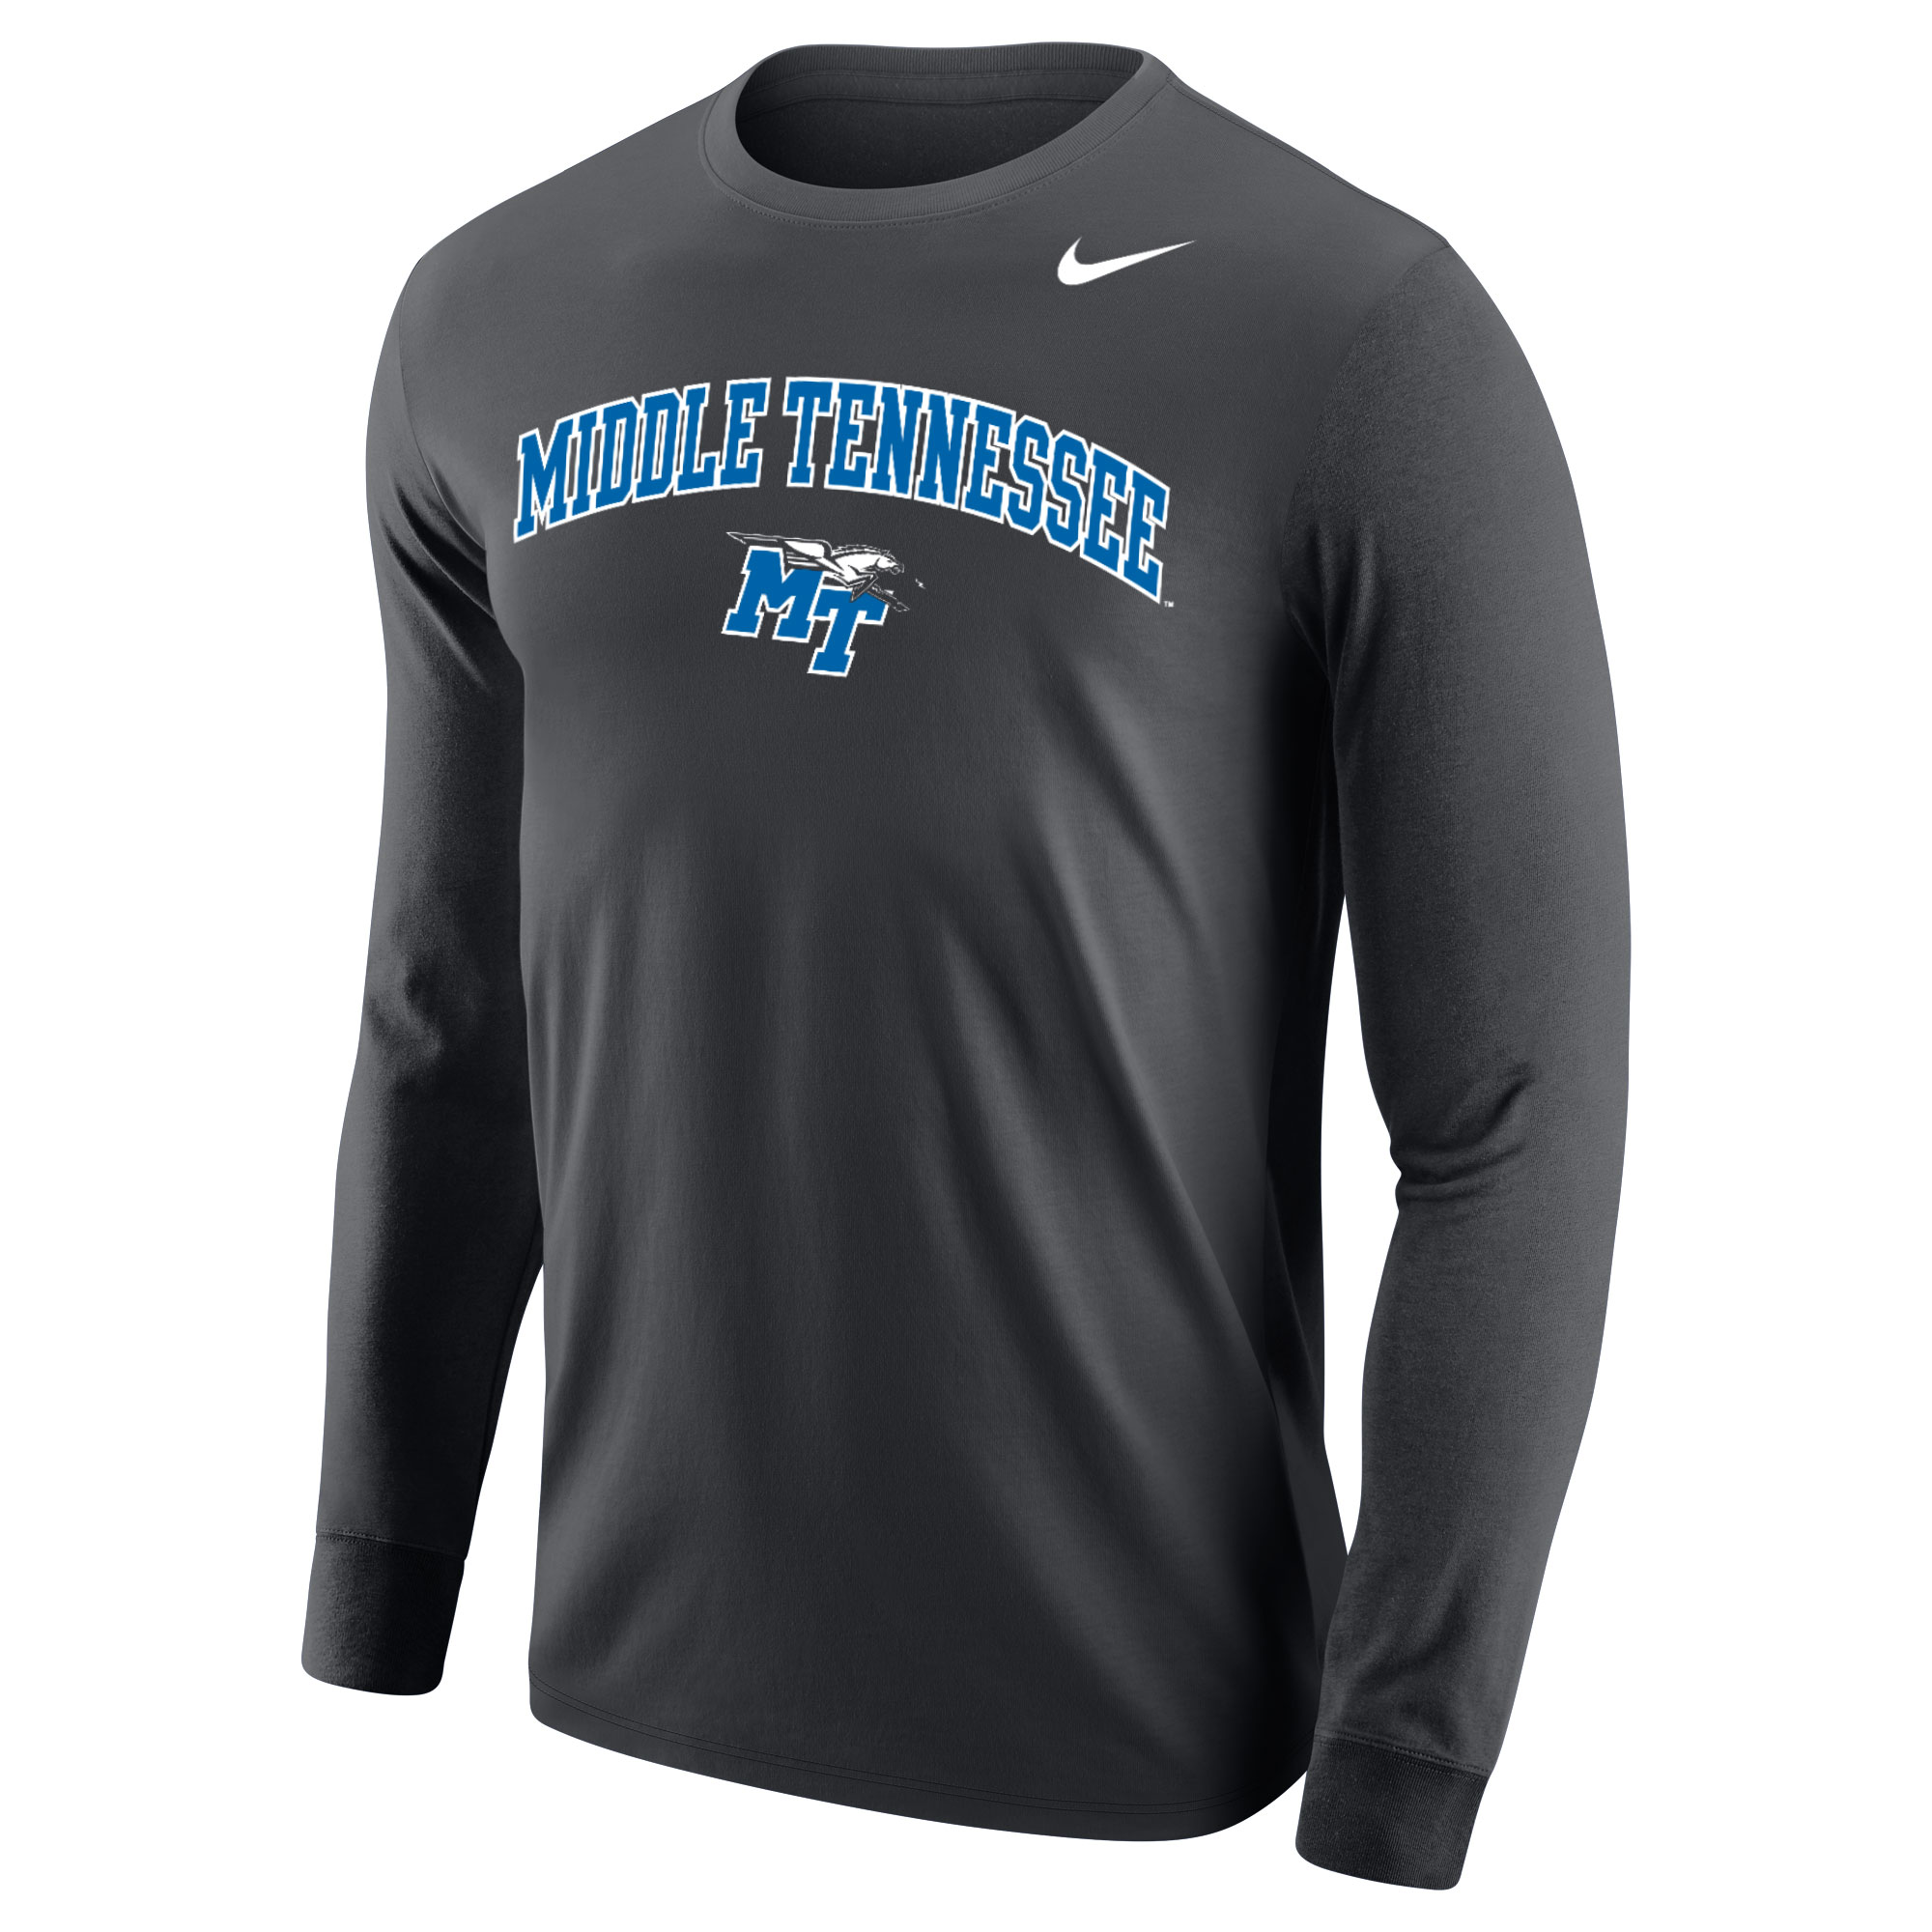 Middle Tennessee MT Logo w/ Lightning Nike® Core Long Sleeve Shirt